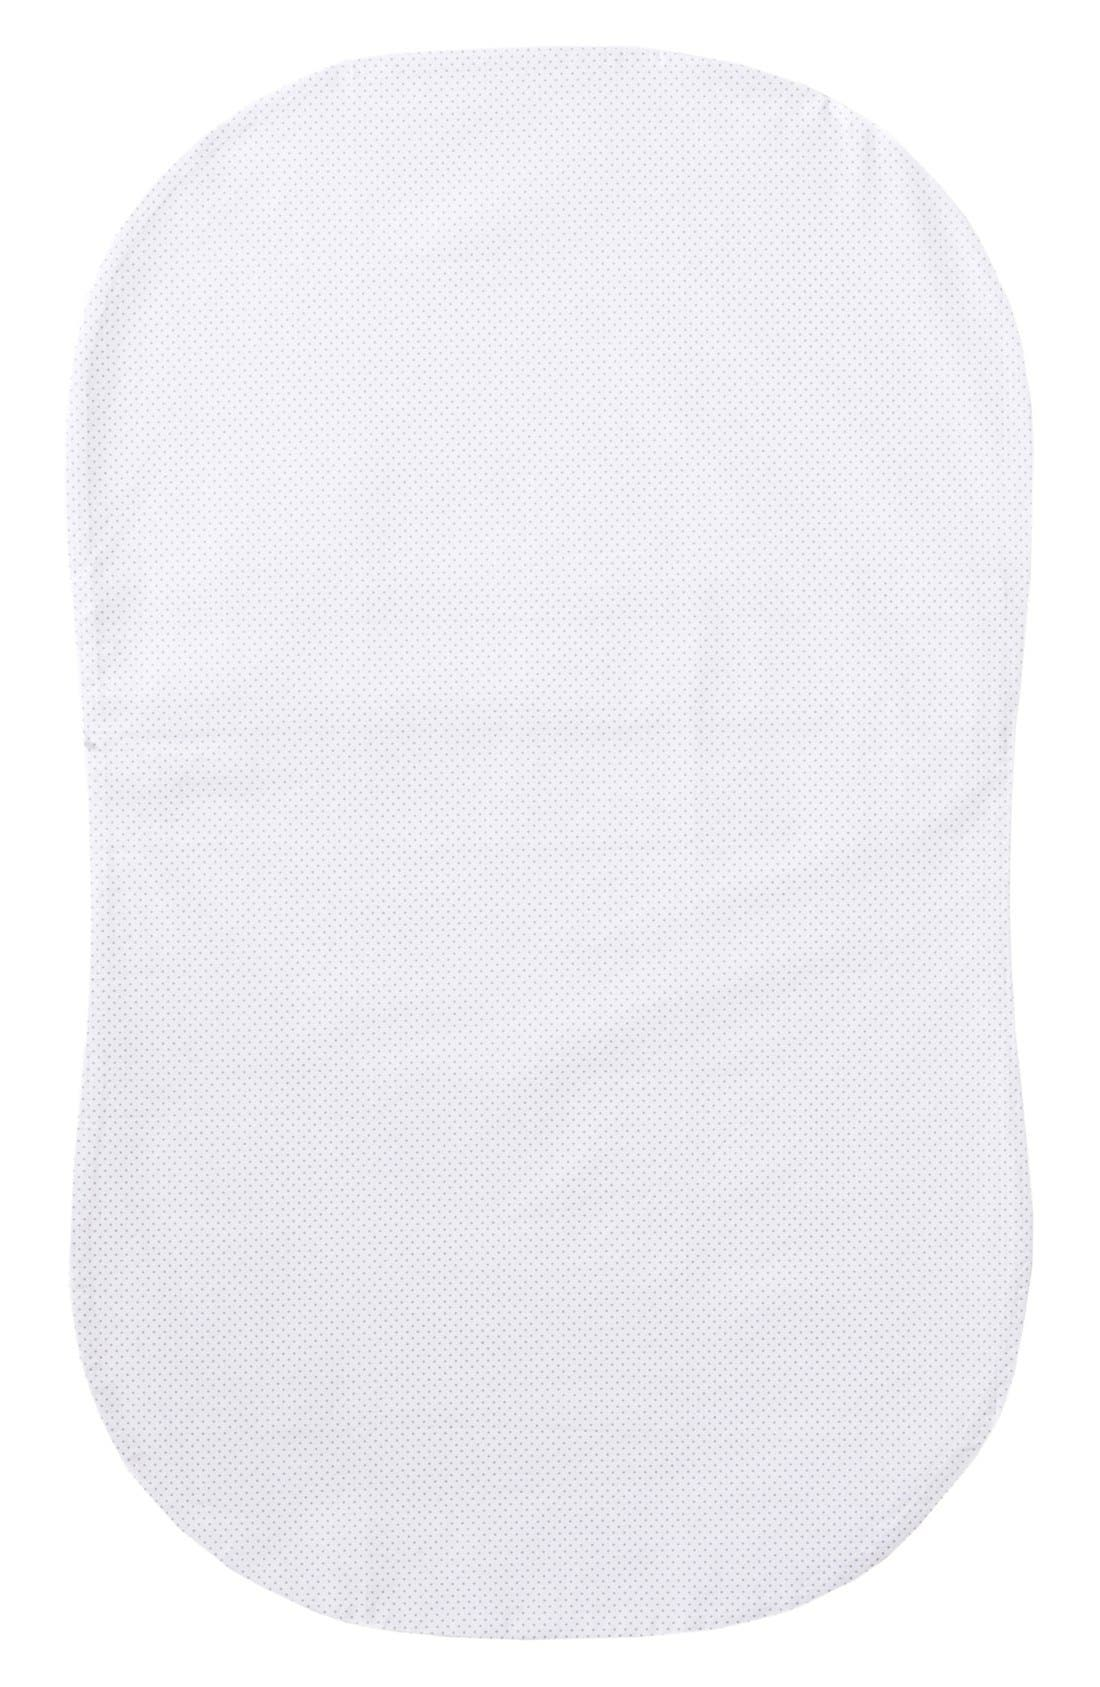 Main Image - Halo Innovations Cotton Fitted Sheet for Halo Innovations Bassinest Swivel Sleeper